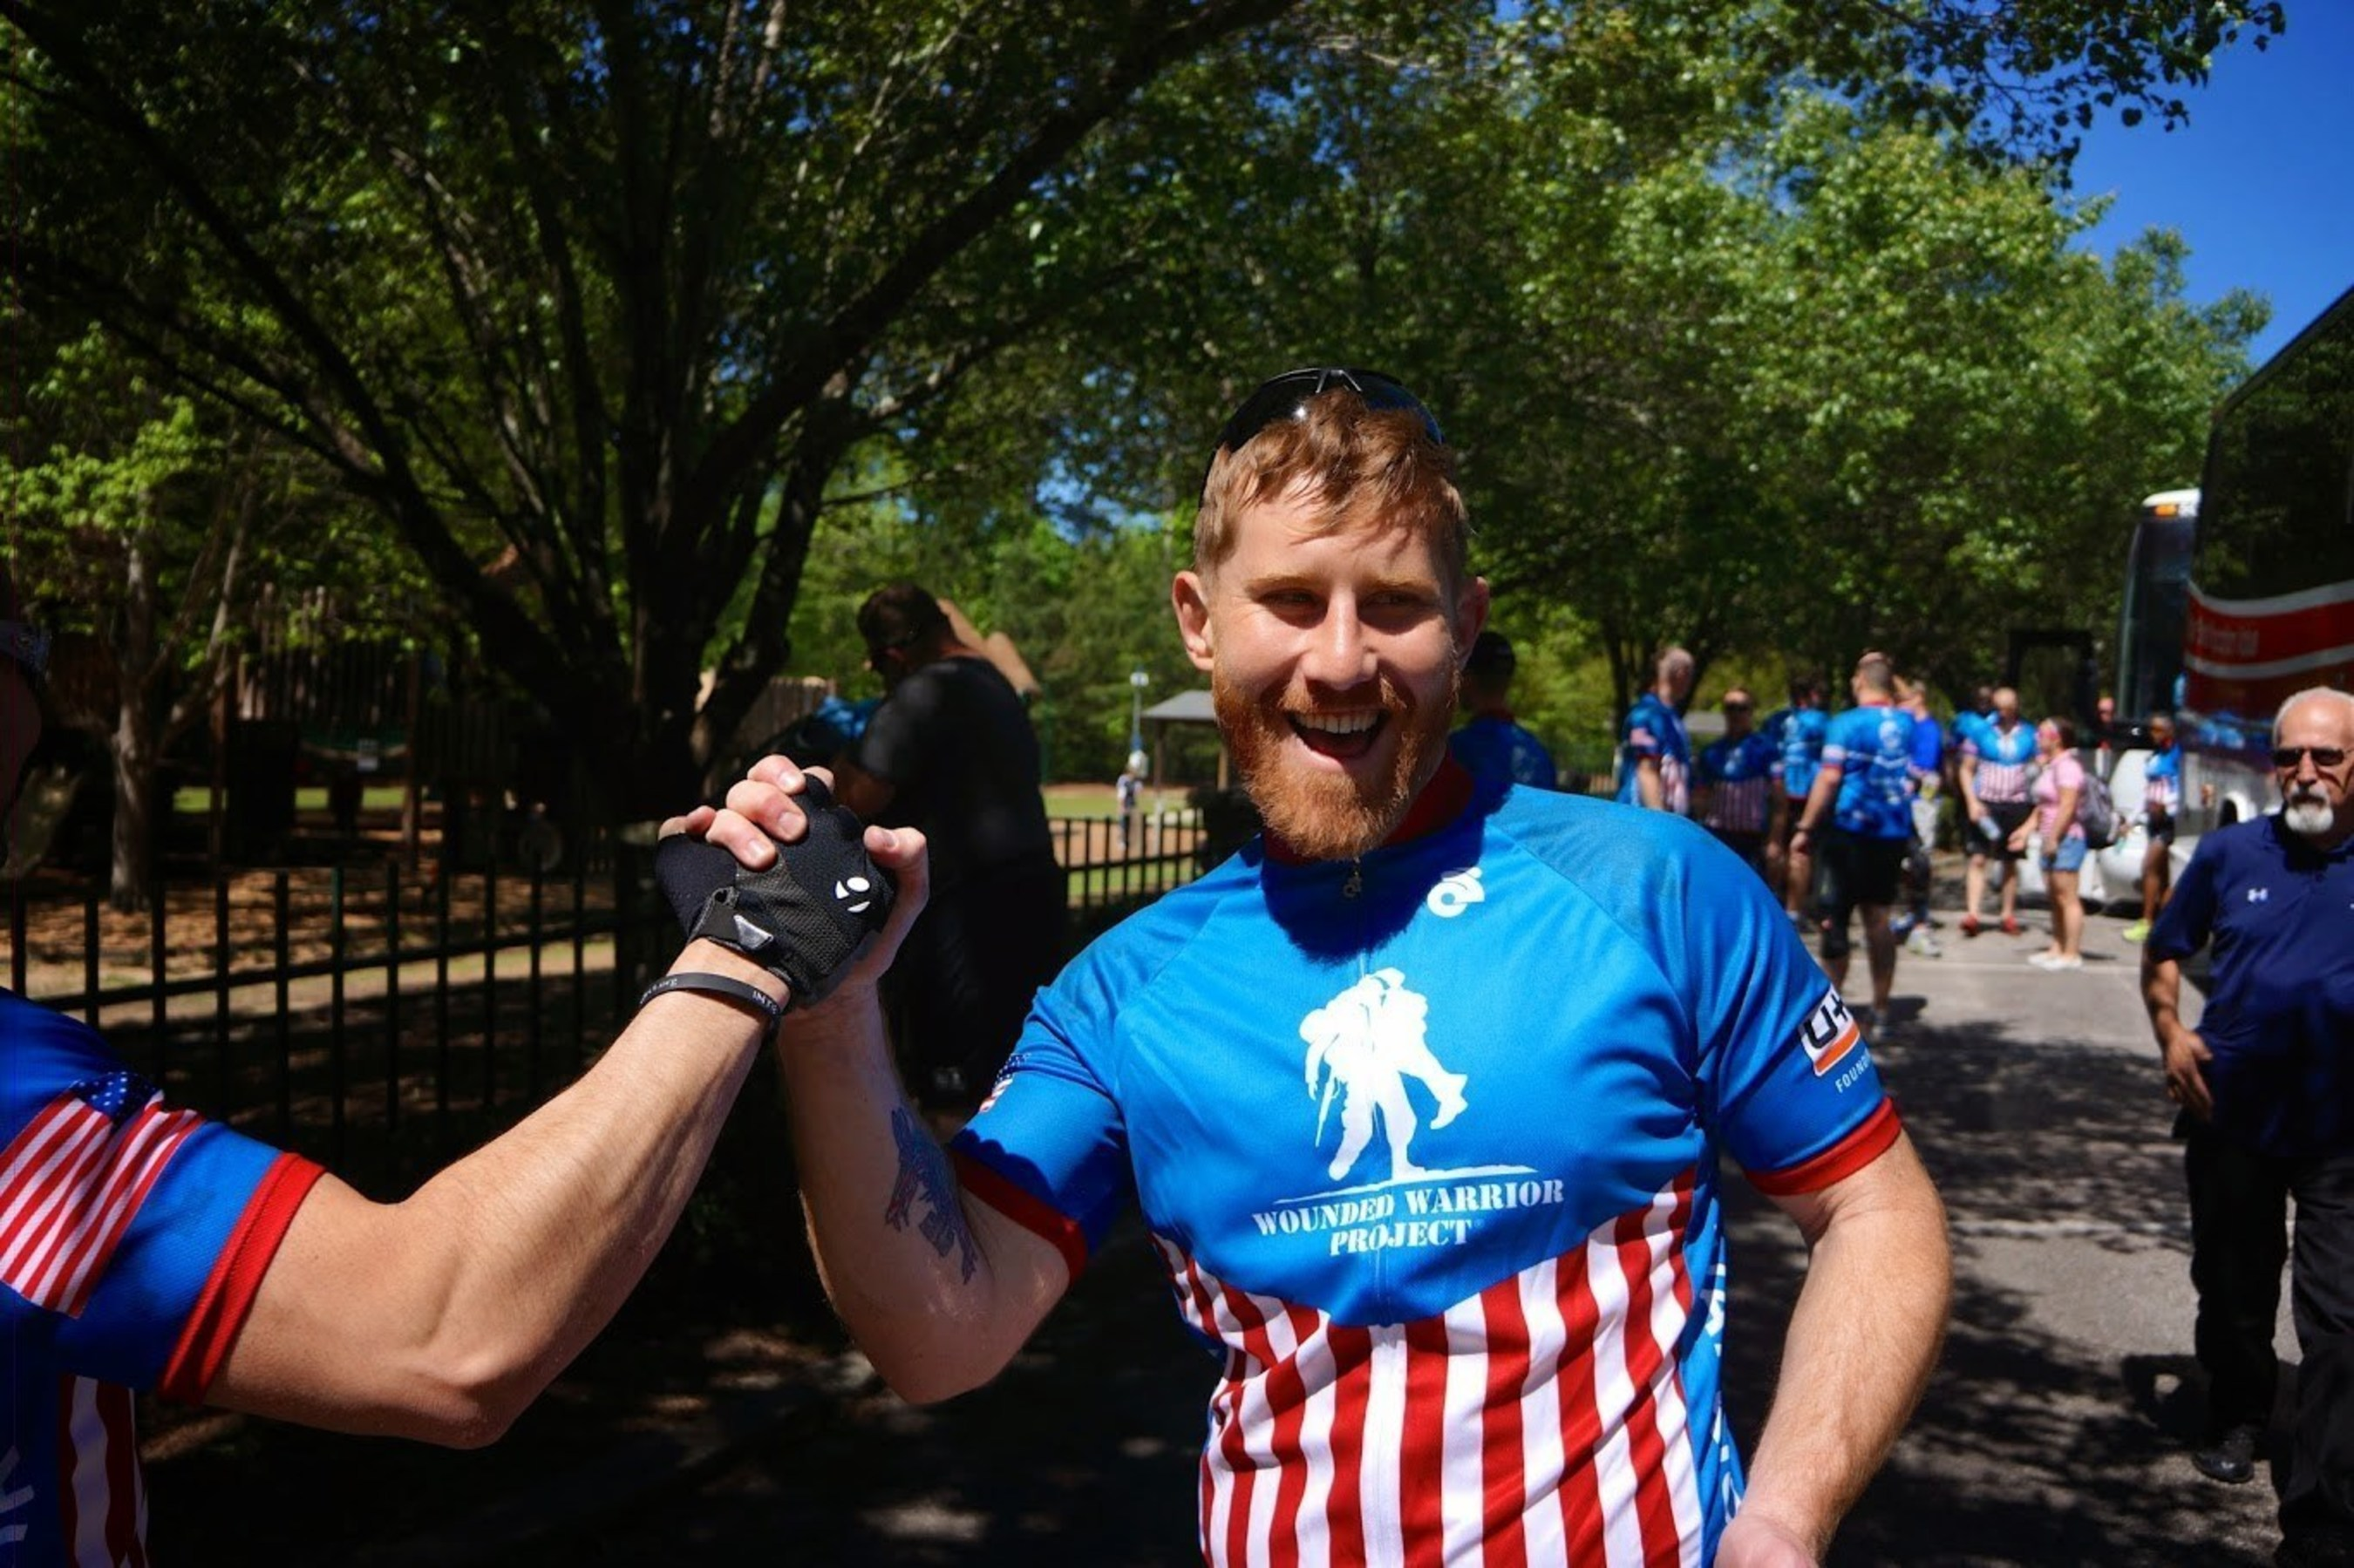 Injured service members celebrating during the 2015 Wounded Warrior Project Soldier Ride in Atlanta.